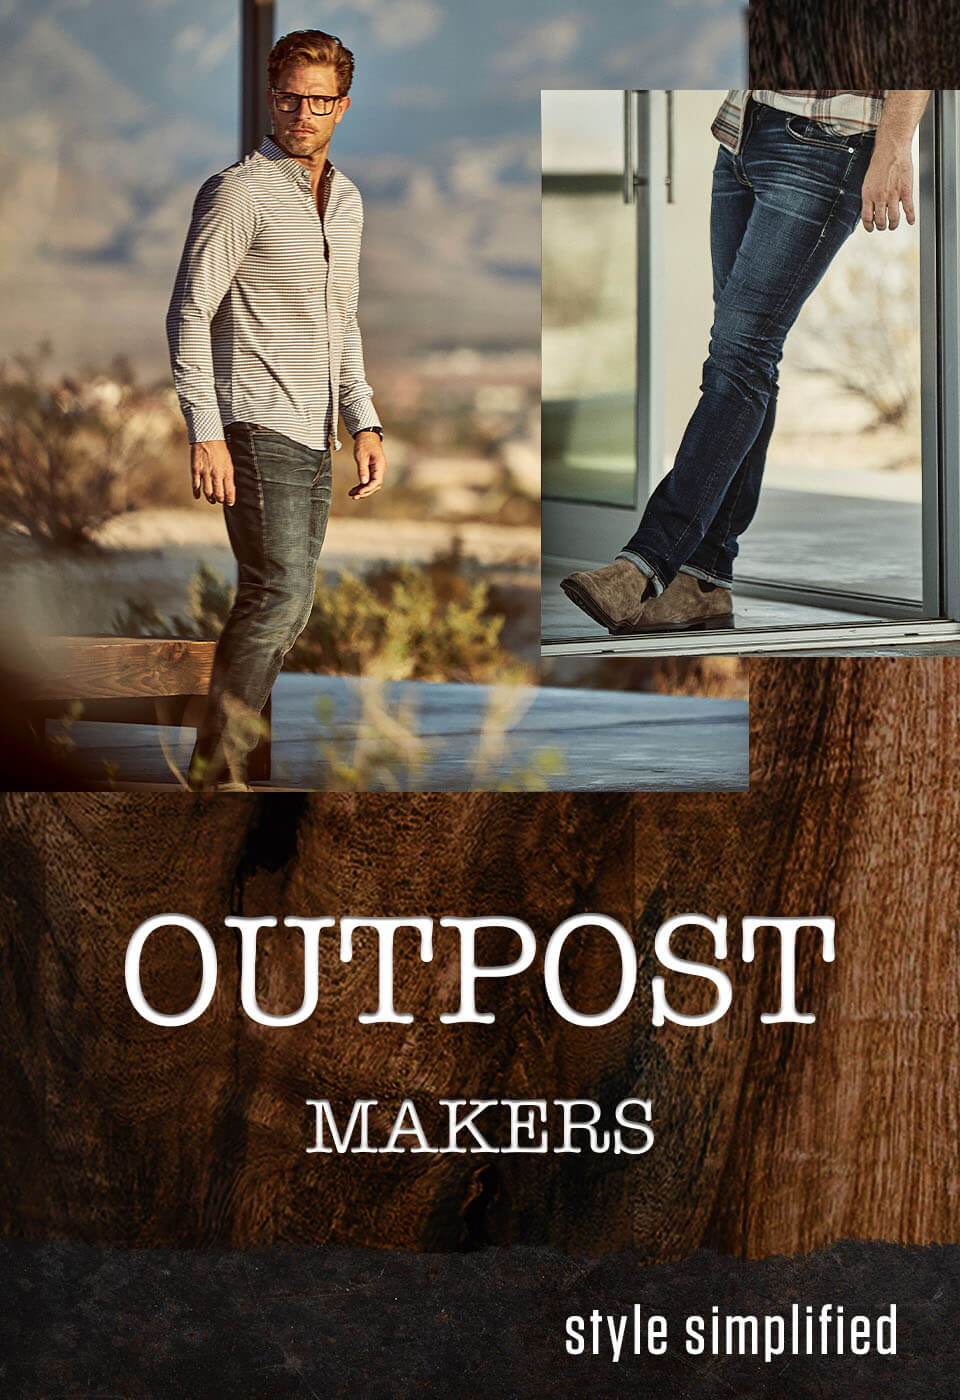 Outpost Makers - A guy wearing a grey Outpost Makers long sleeve shirt with dark wash Outpost Makers jeans